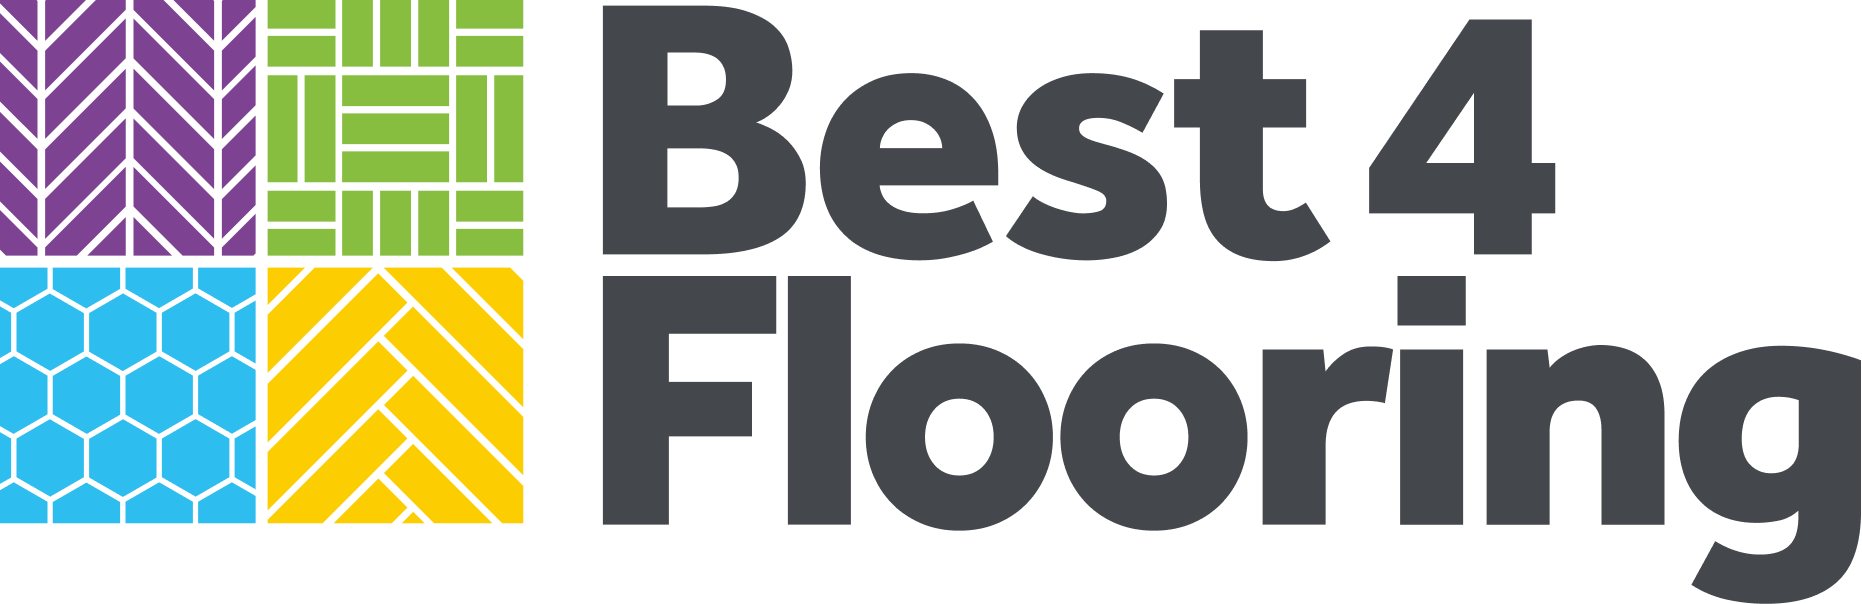 Read Best4flooring Ltd Reviews